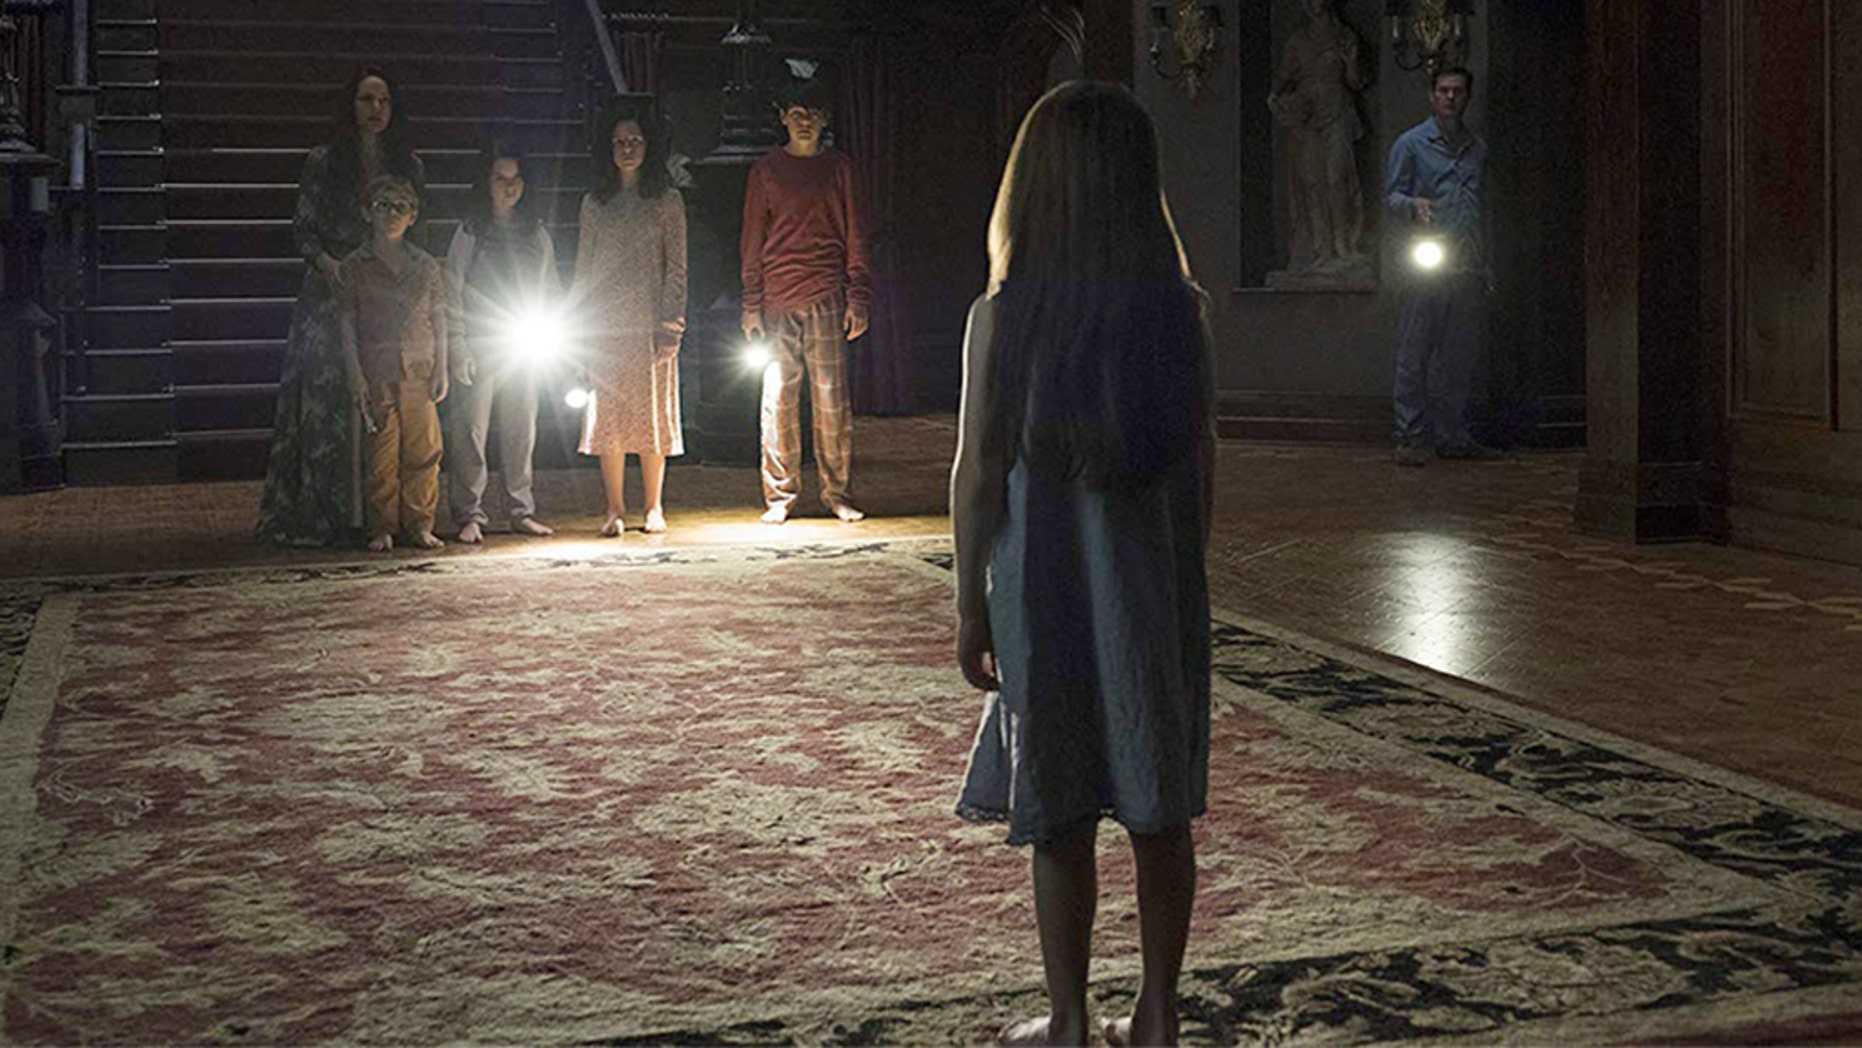 """The Haunting of Hill House"" will be returning for a second season but as a new chapter titled, ""The Haunting of Bly Manor.:"